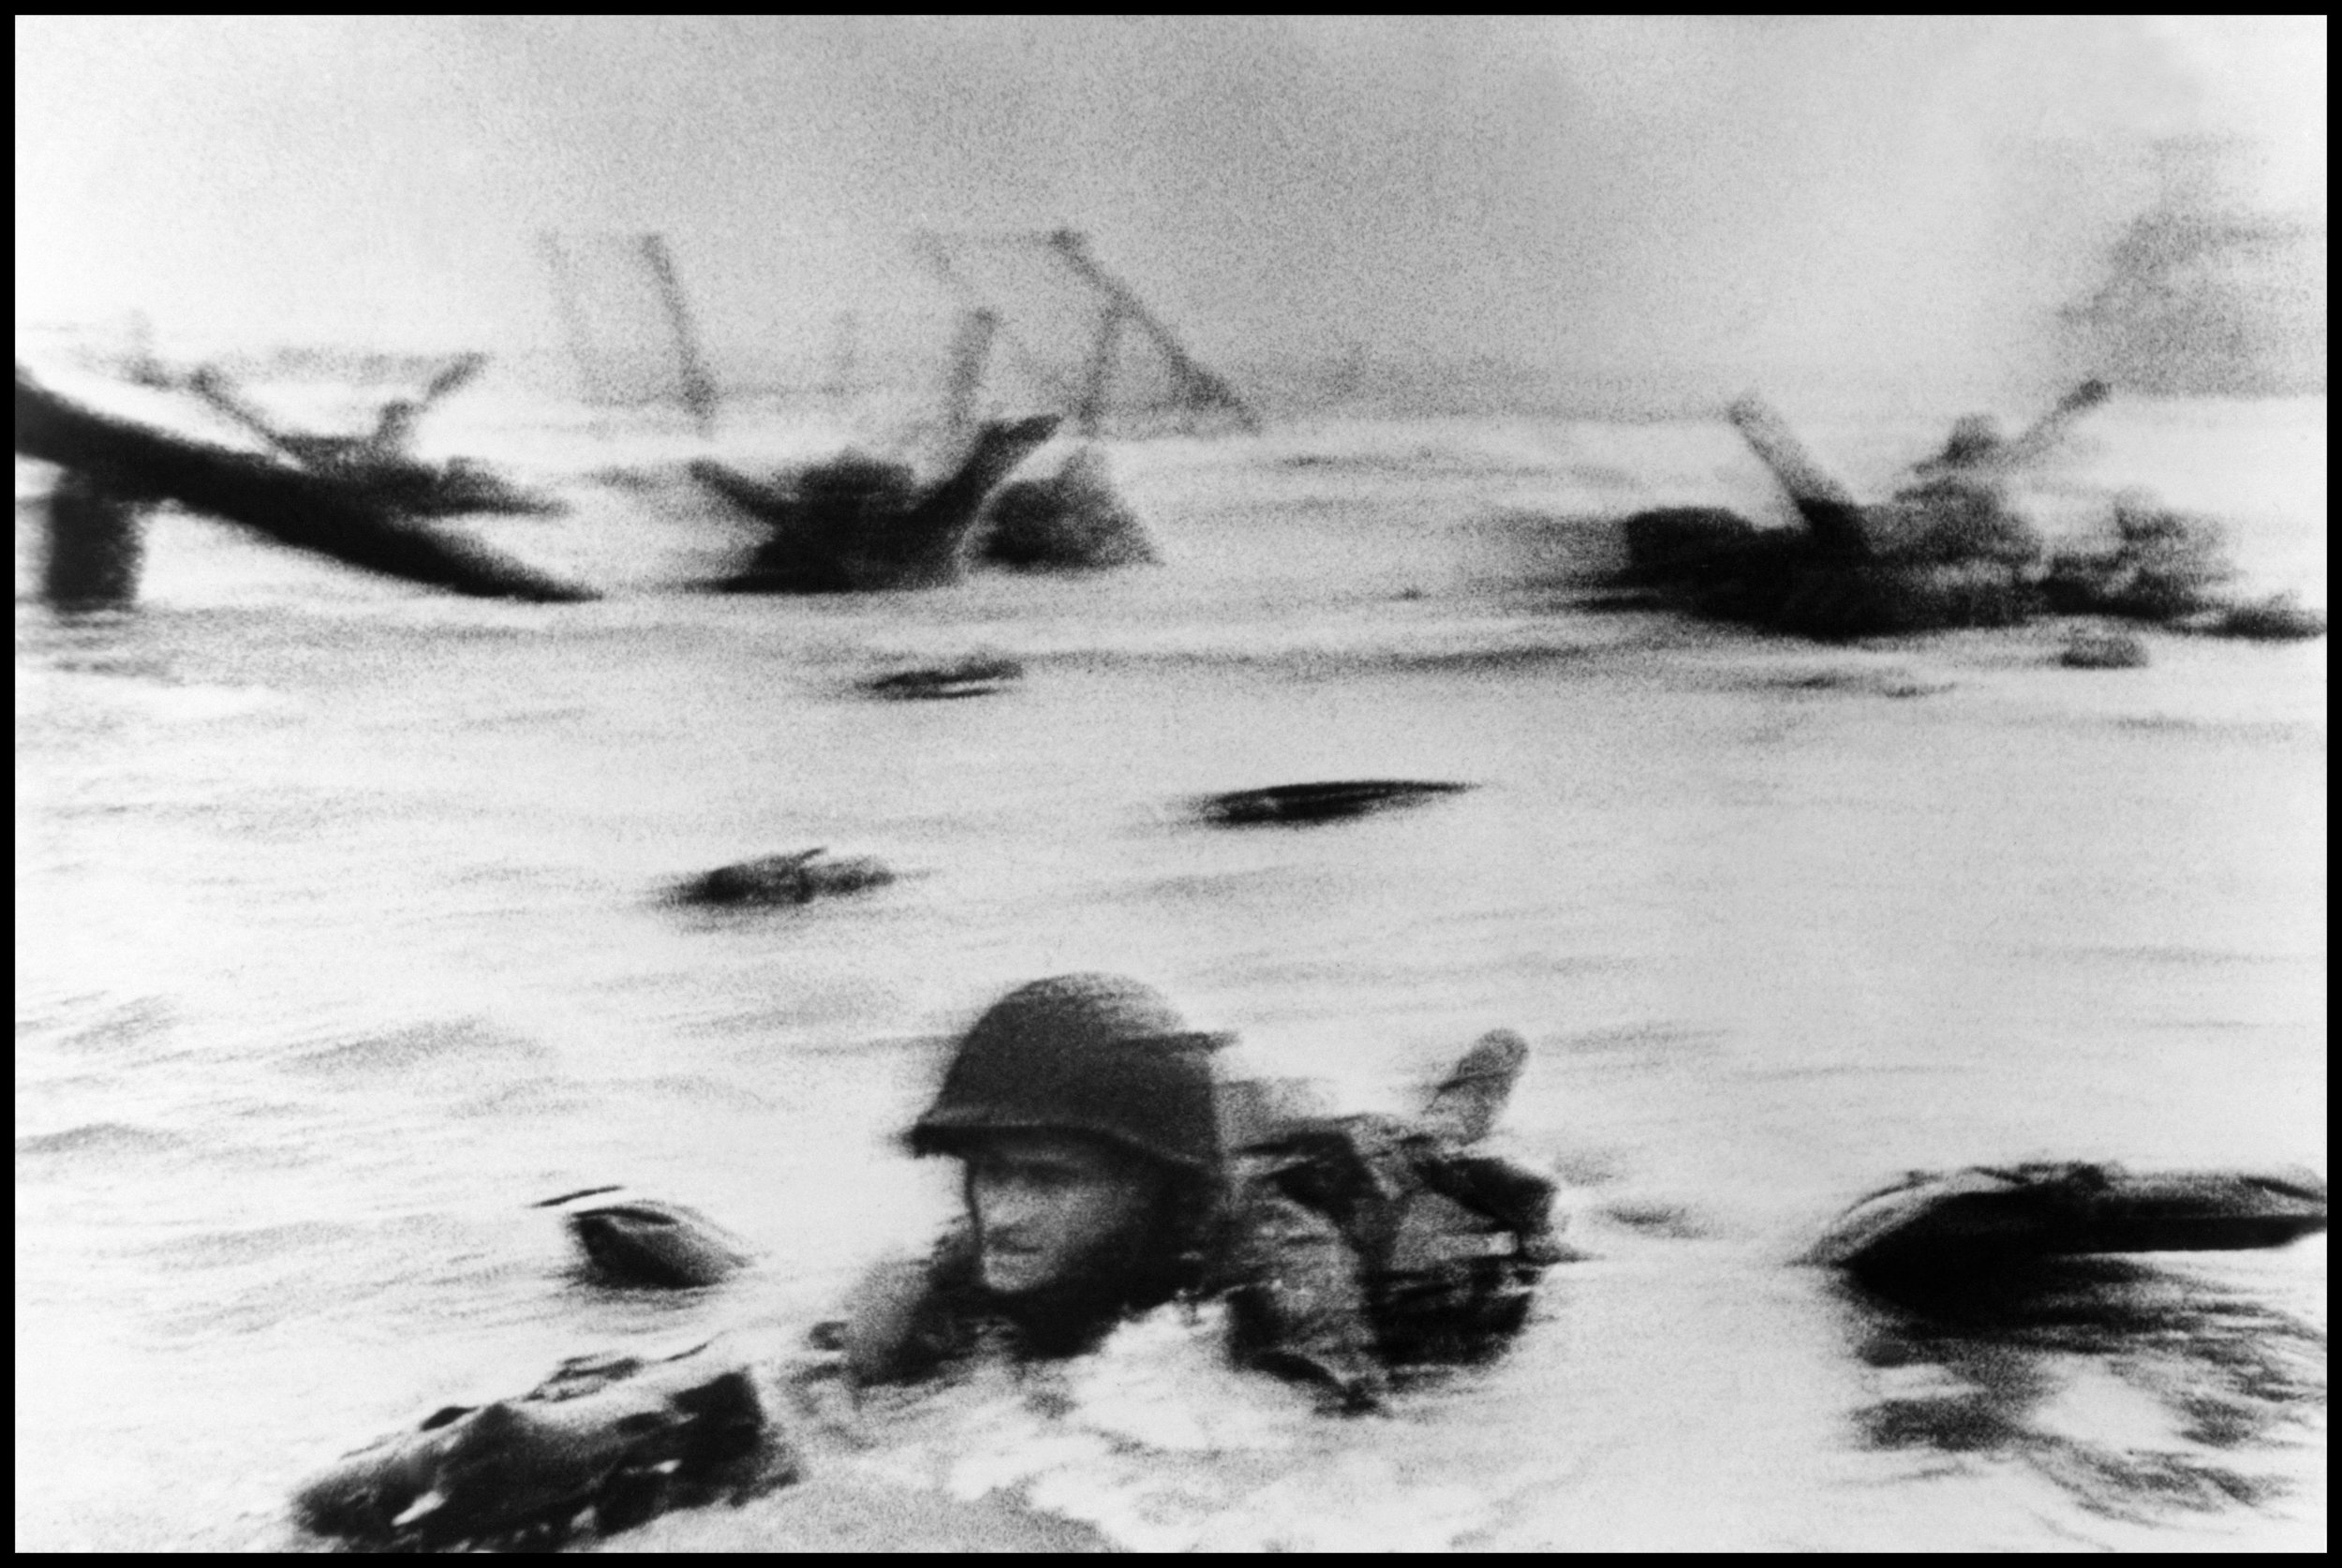 robert-capa-dday-face-in-the-surf.jpg